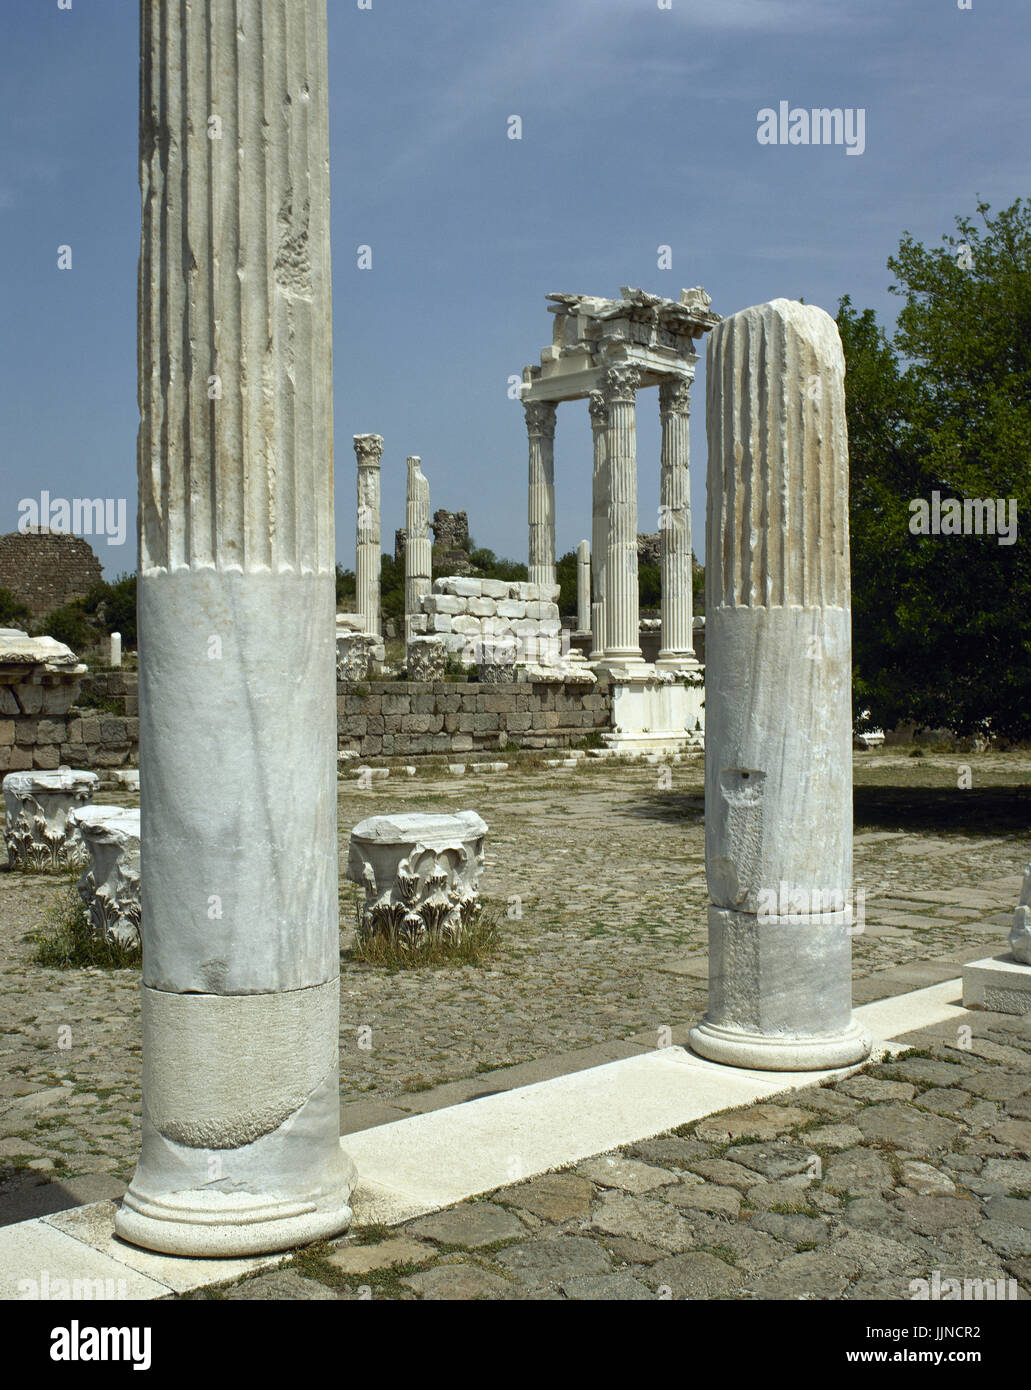 Turkey. Pergamon. Ancient Greek city in Aeolis. The Temple of Trajan on the Upper Acropolis. Stock Photo